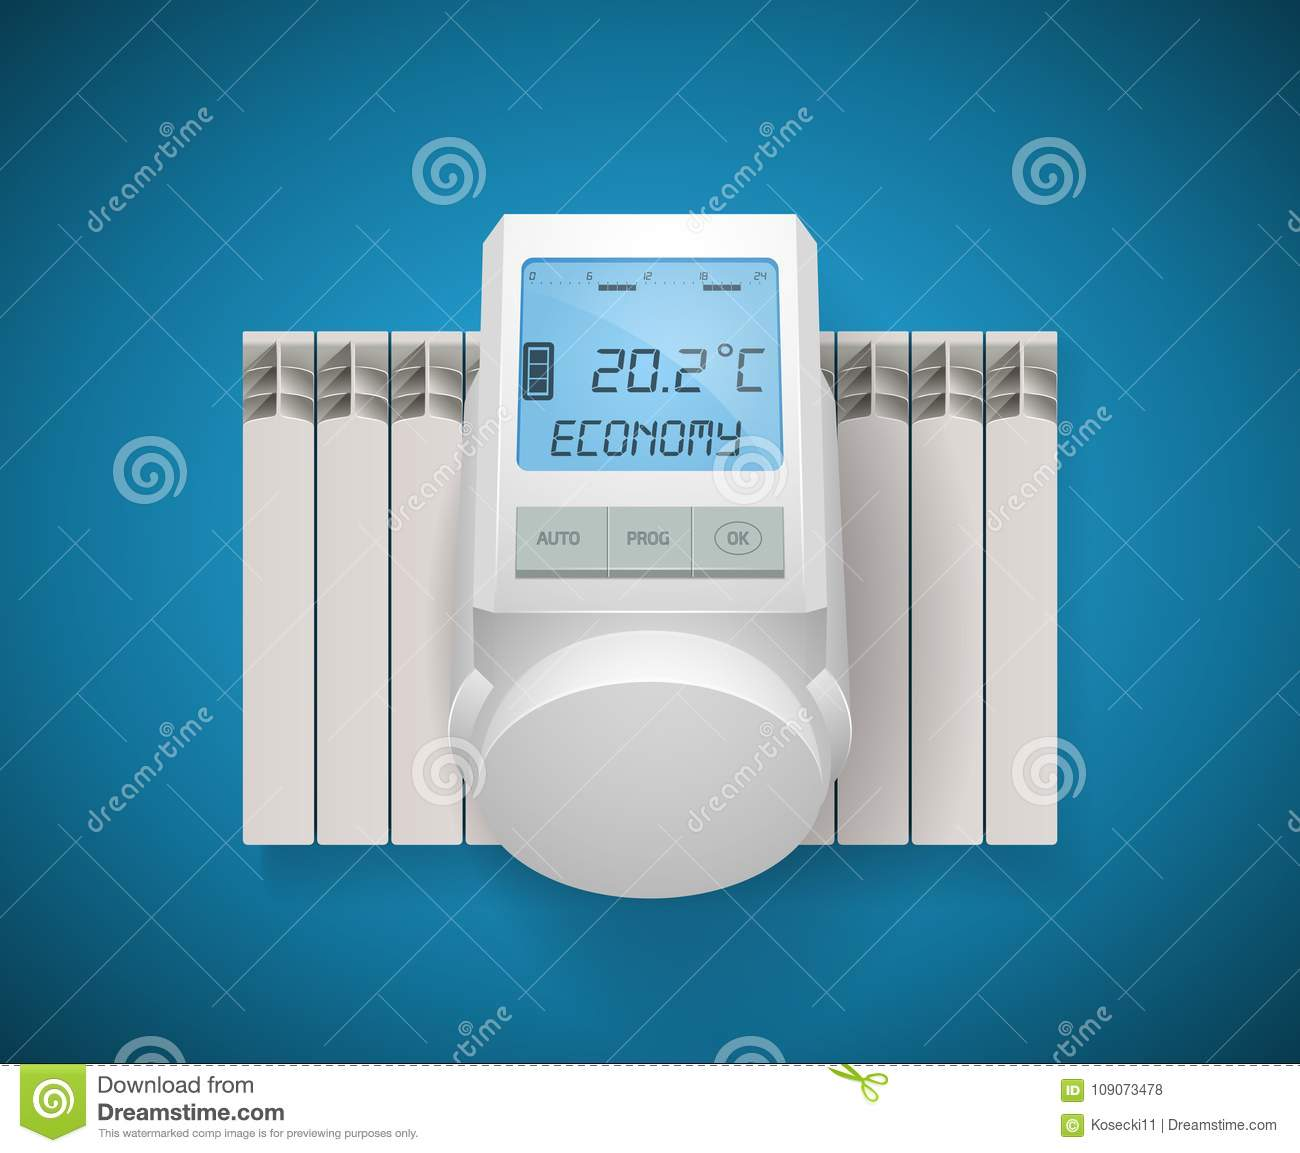 Domestic Heating System Concept - House Installation Stock Vector ...